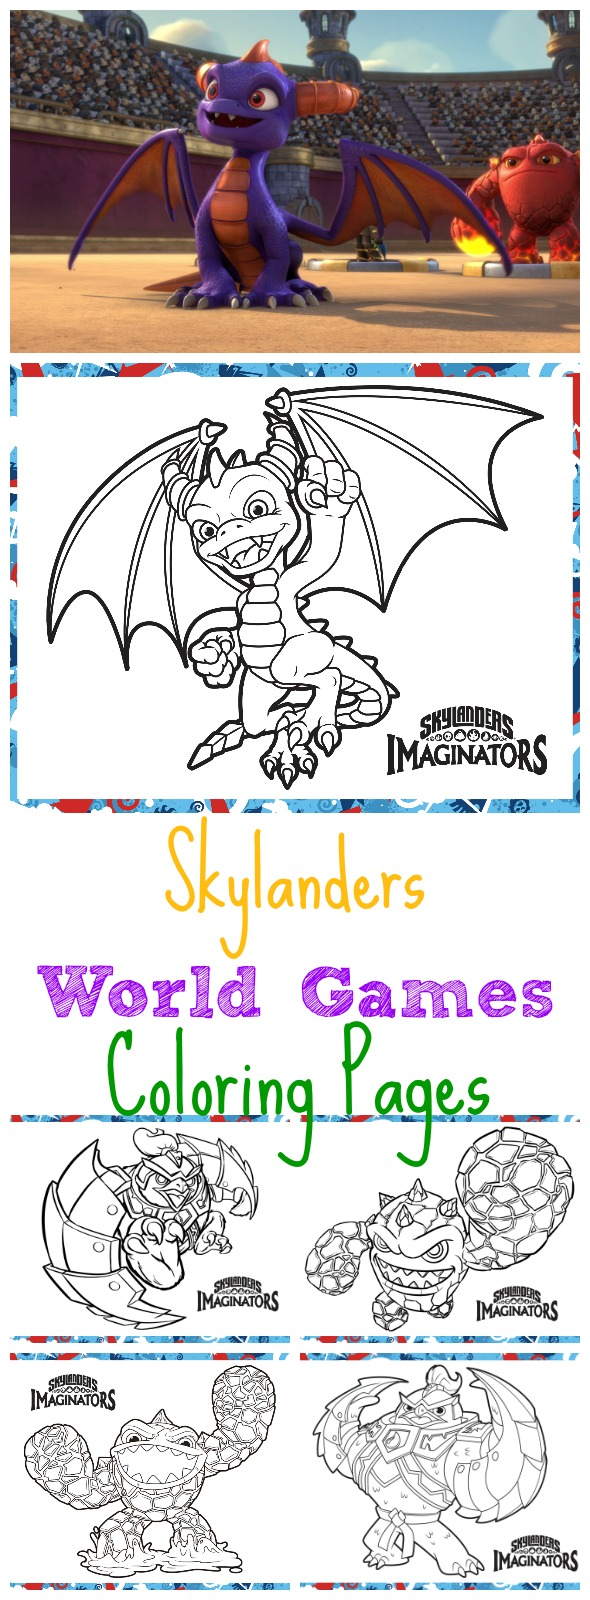 Skylanders World Games Coloring Pages - Busy Moms Helper